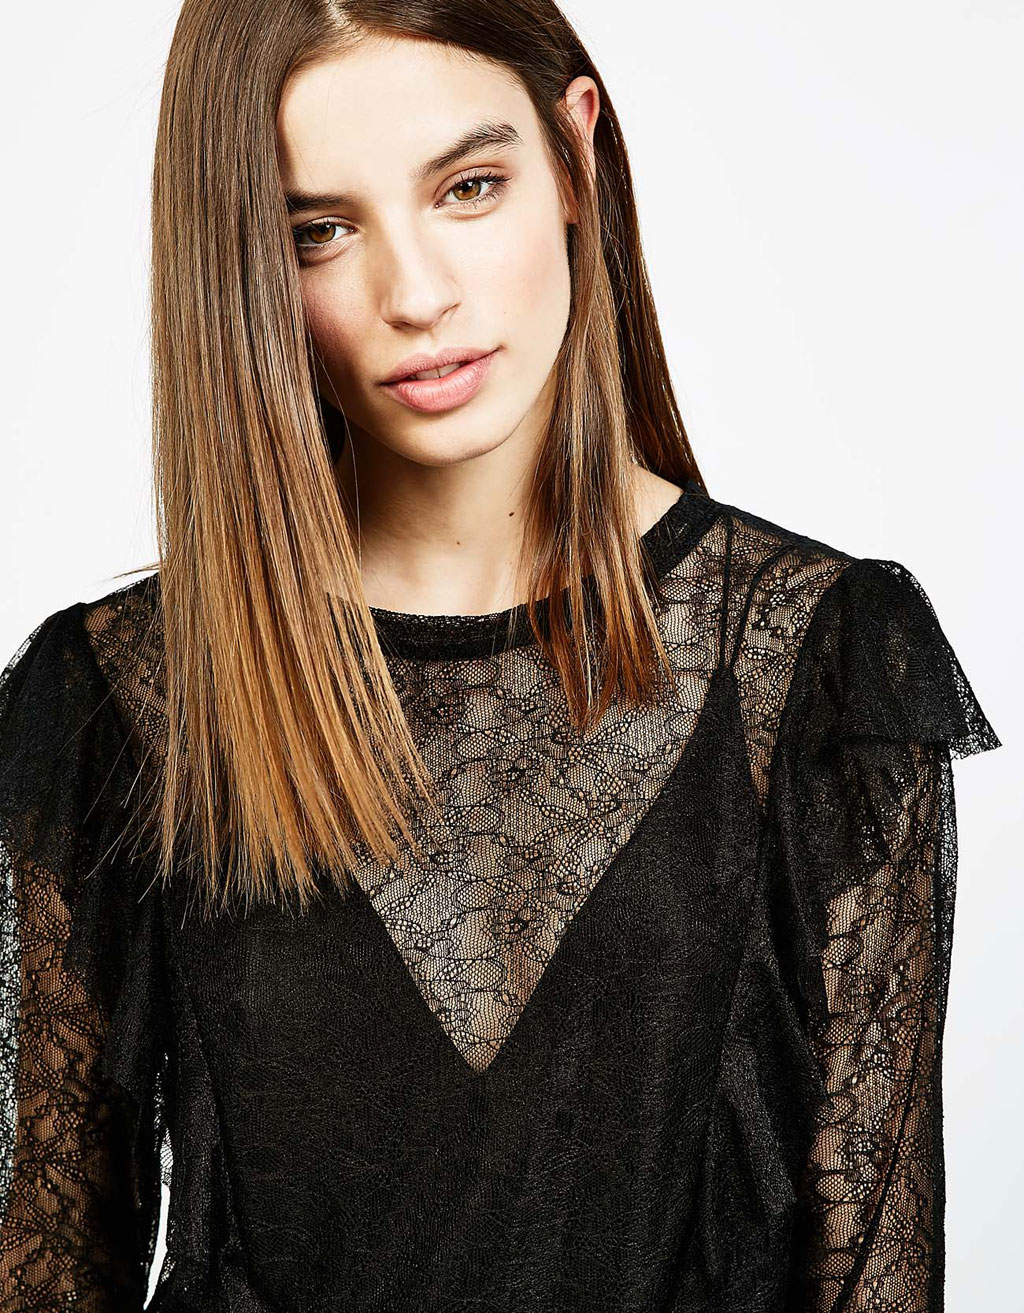 Frilled blonde lace T-shirt